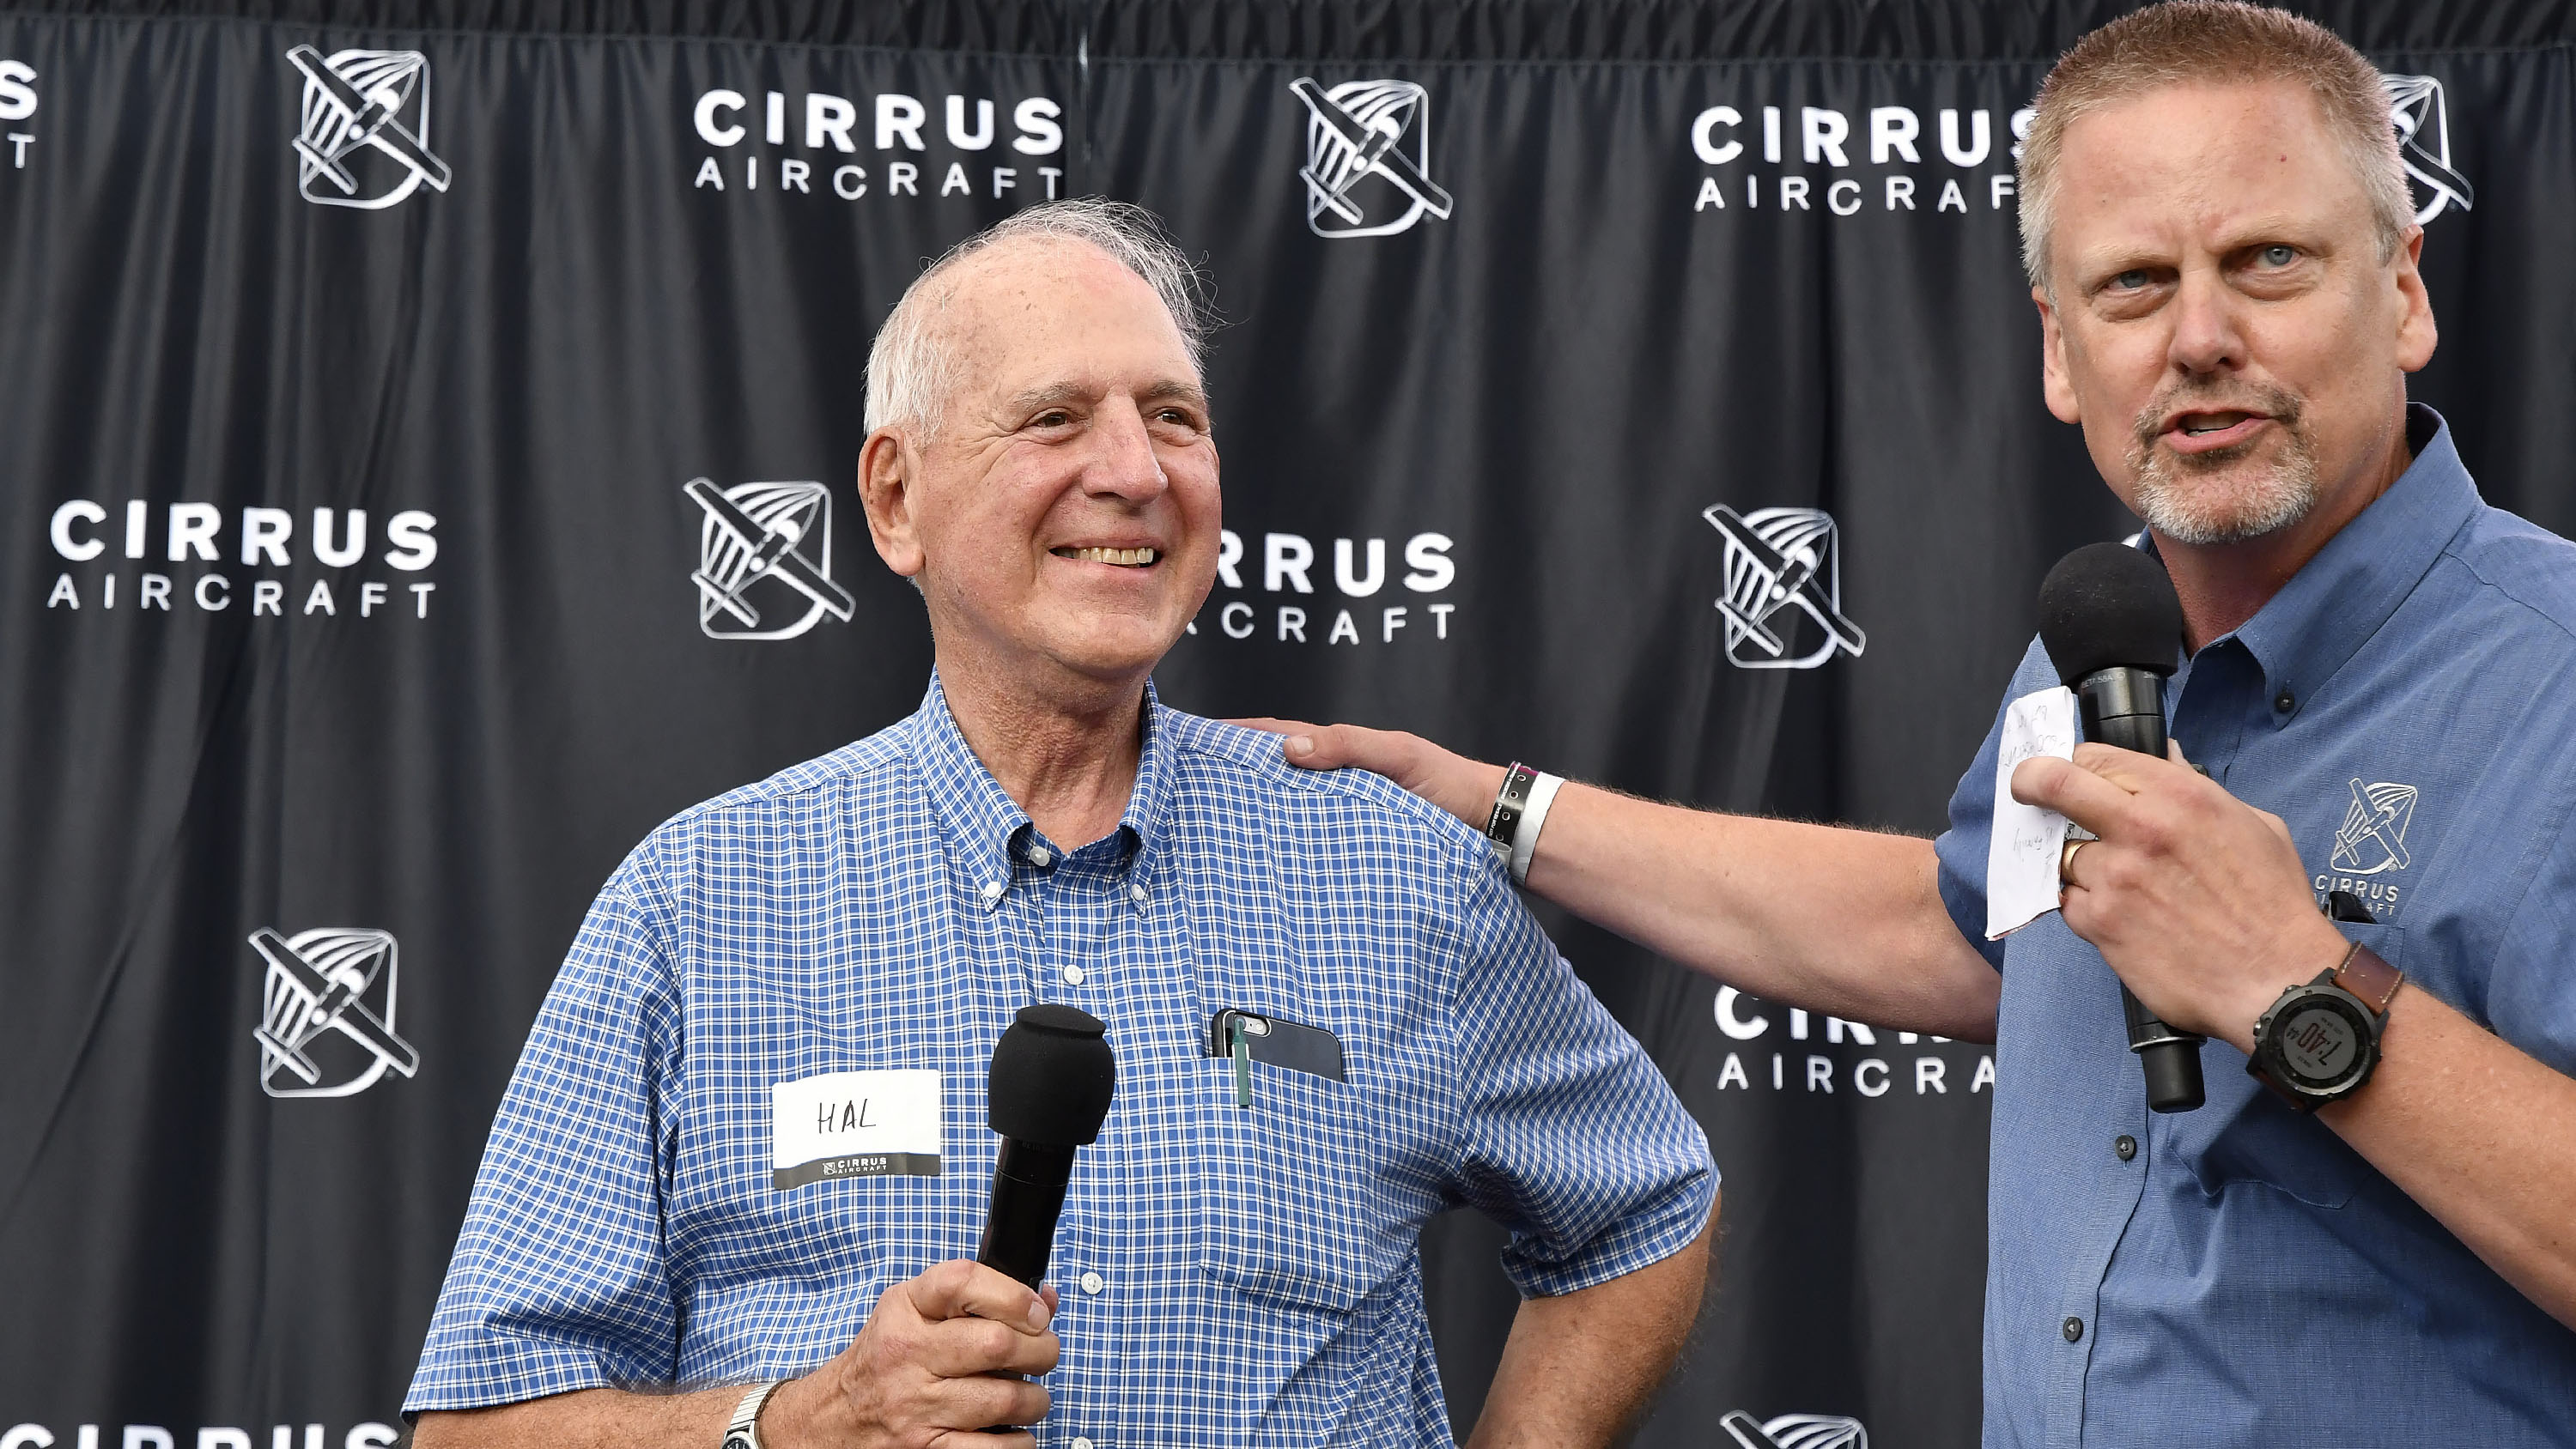 Sporty's Pilot Shop founder Hal Shevers and Cirrus co-founder Dale Klapmeier announce an auction for Shevers' Cirrus Vision Jet delivery position during EAA AirVenture at Wittman Regional Airport in Oshkosh July 23. Photo by David Tulis.